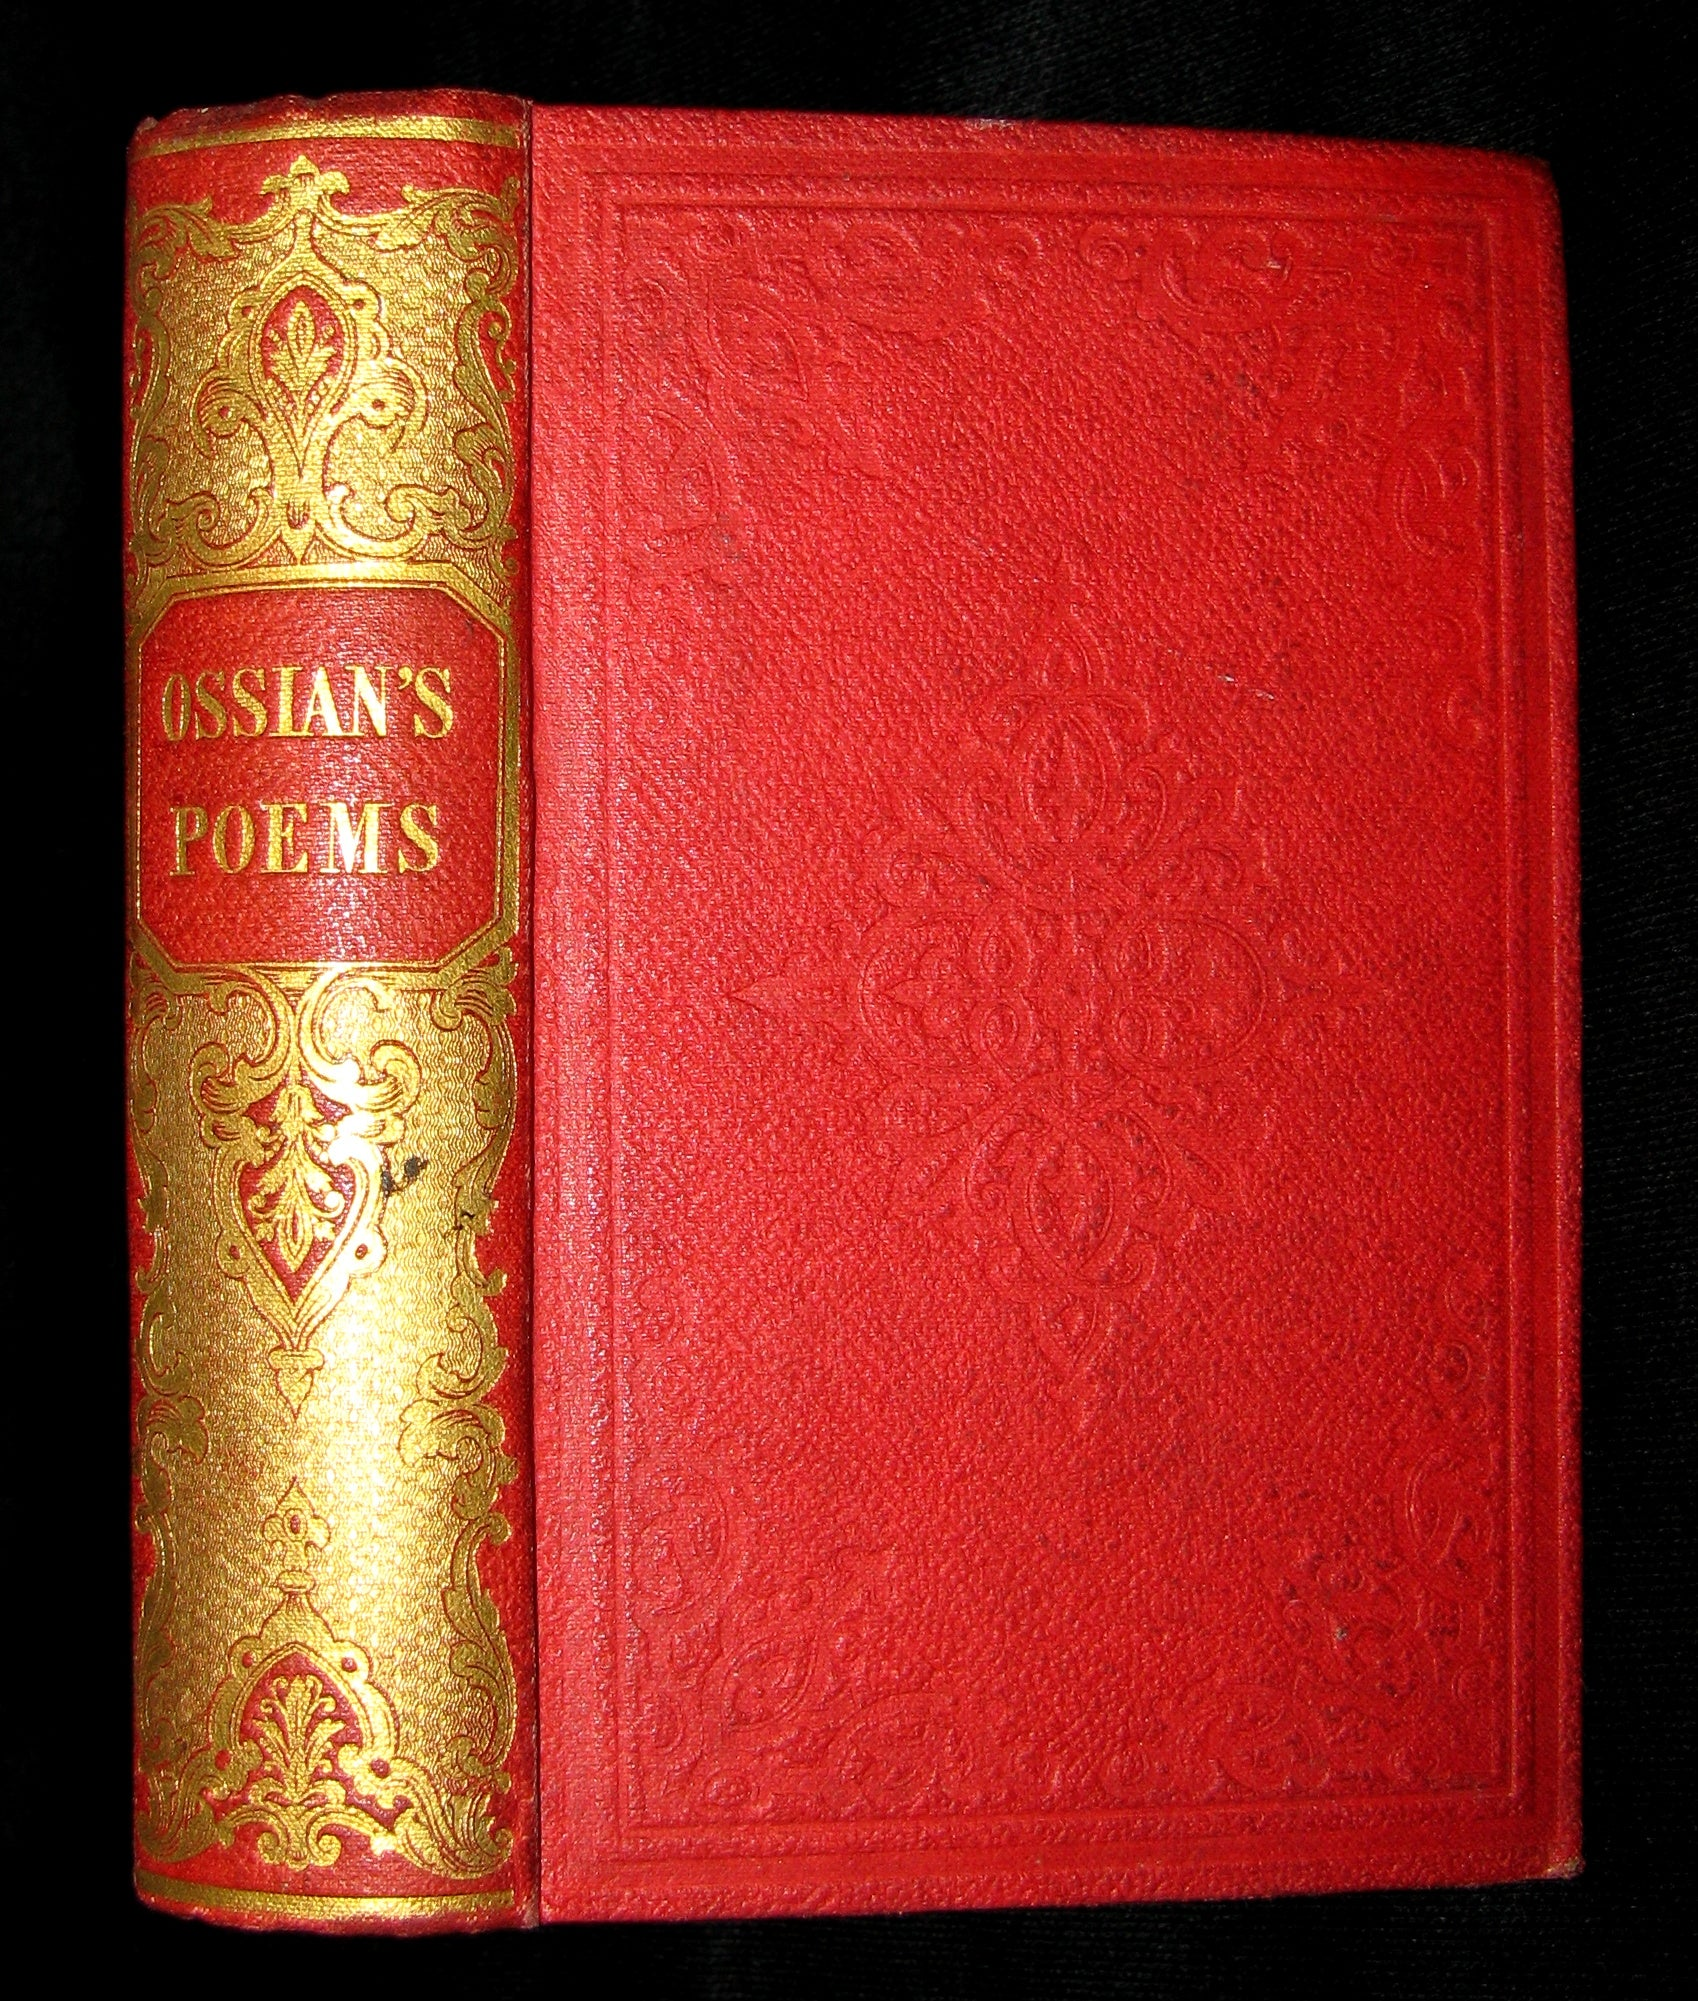 1845 Rare Book - The POEMS of OSSIAN by James Macpherson